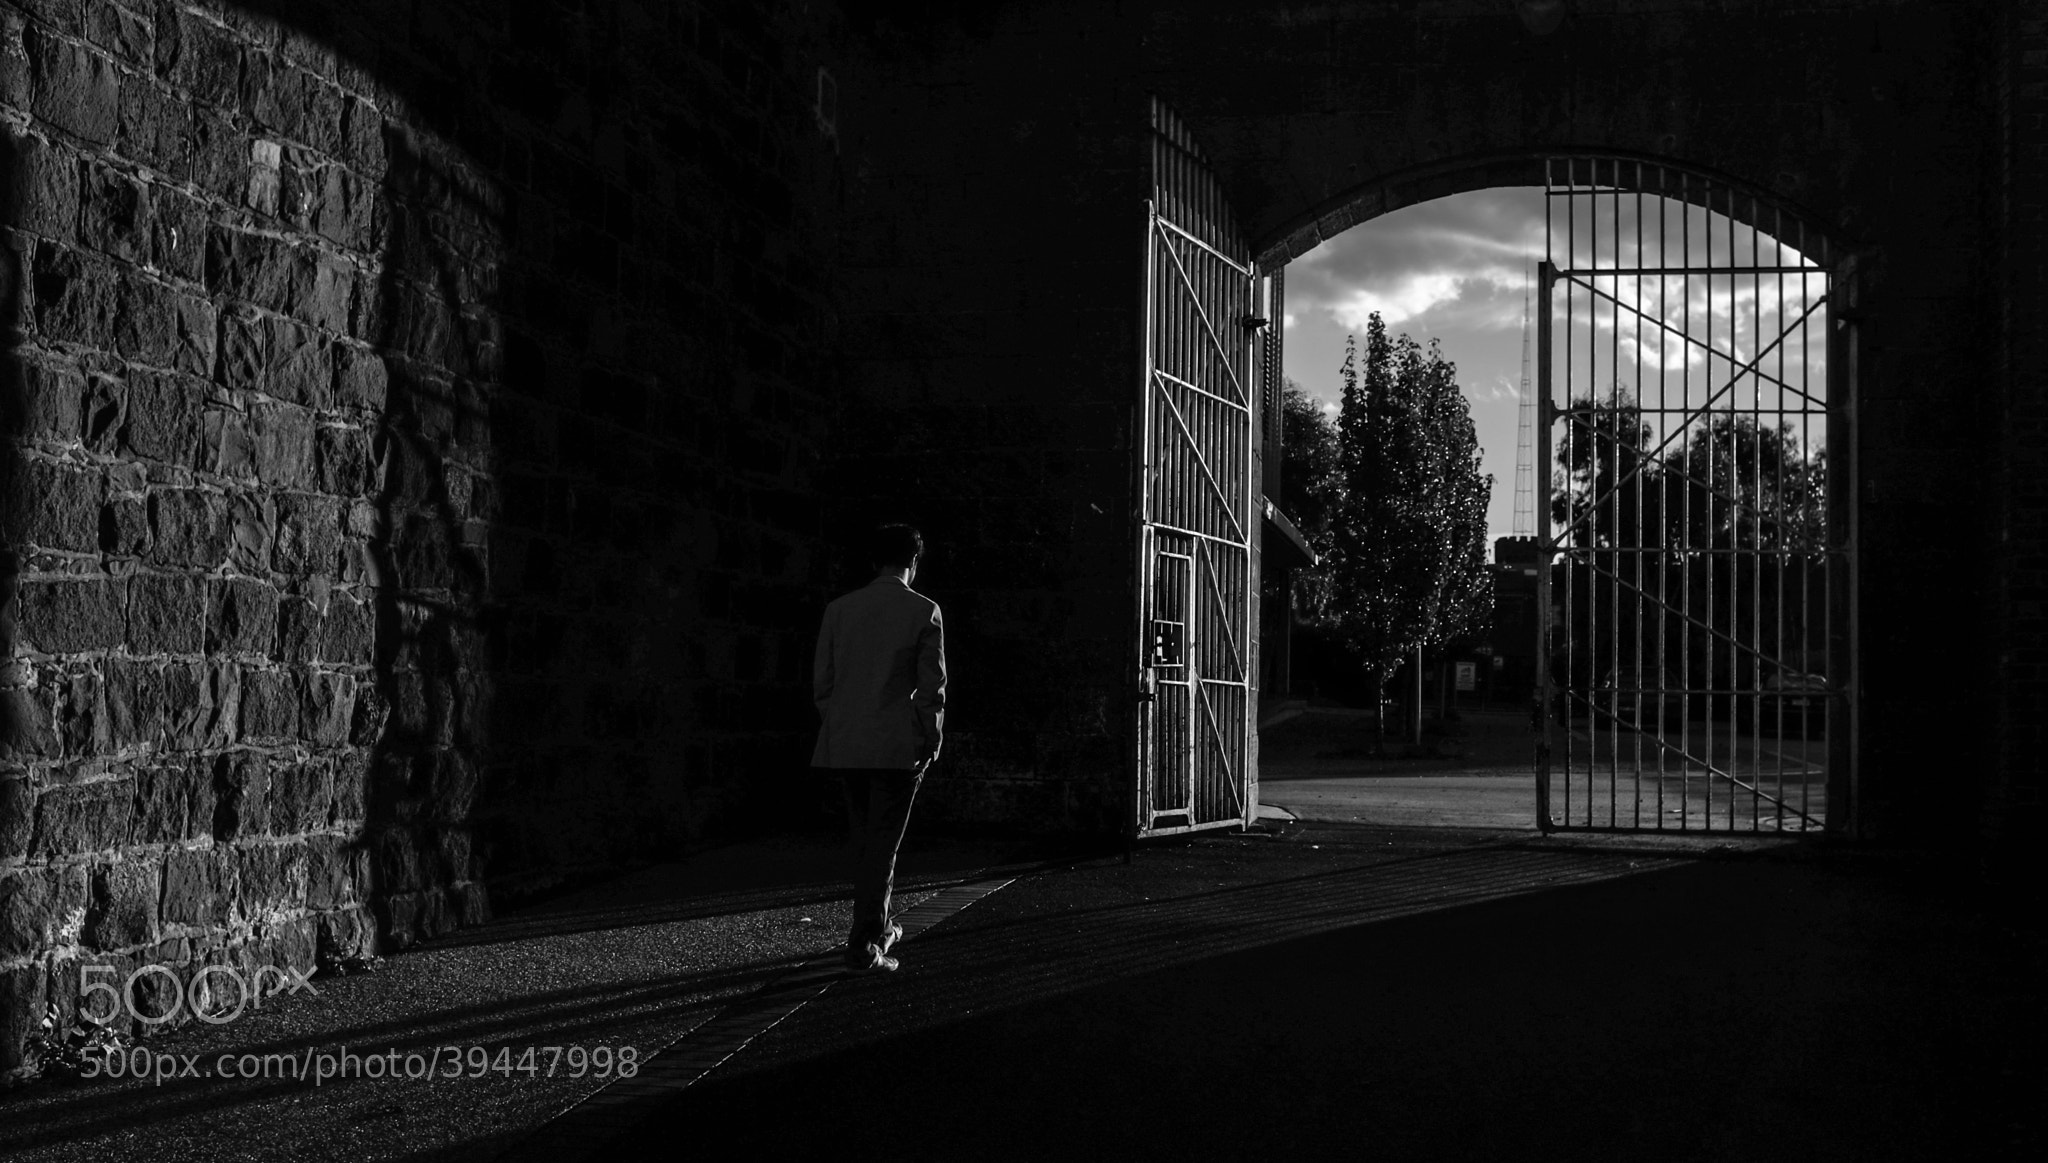 Photograph through the gate by Edib Unal on 500px